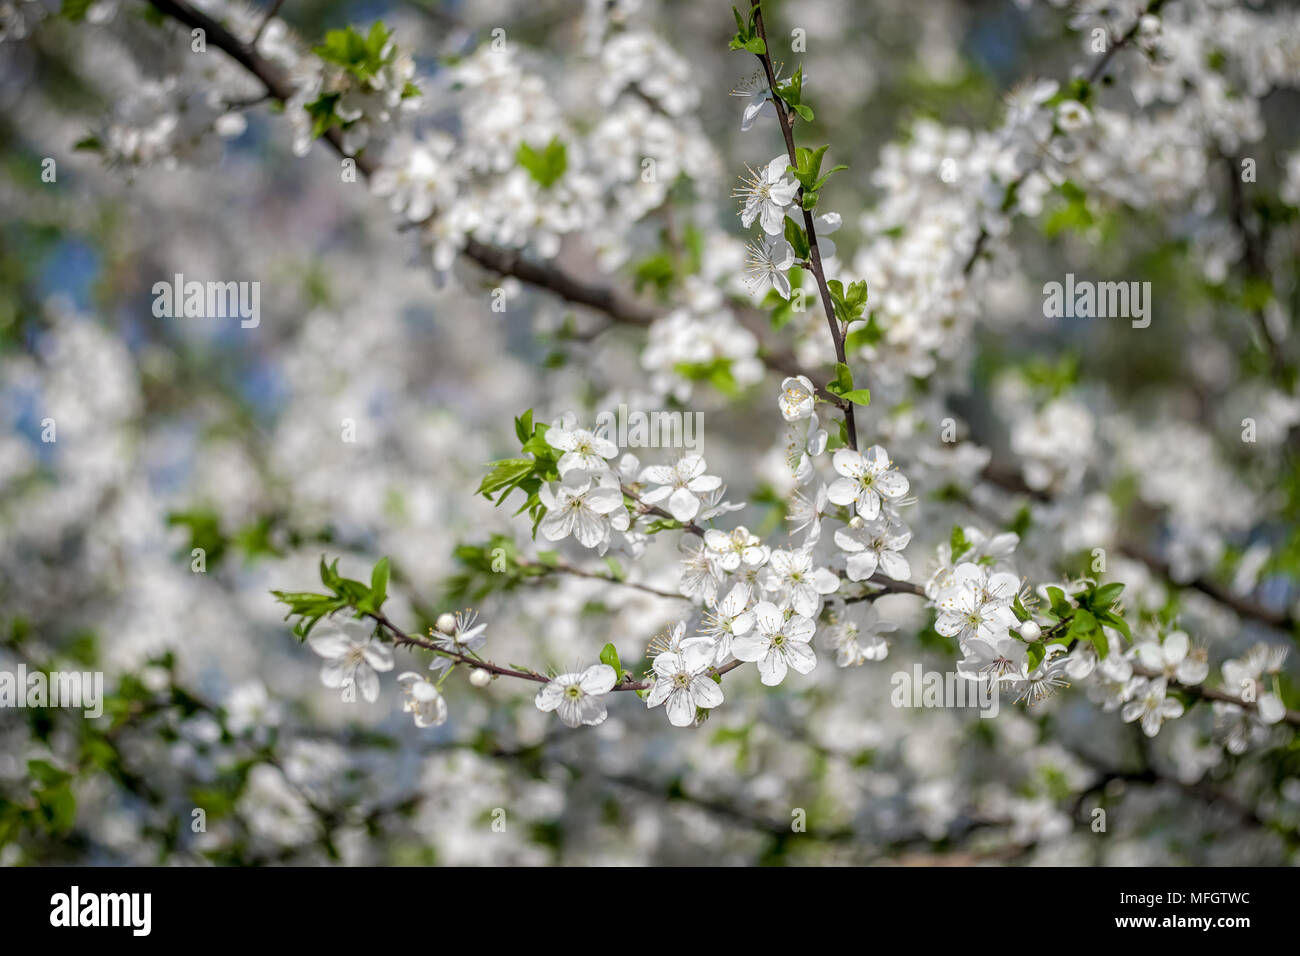 Flowering apricot tree in spring white flowers of apricot spring flowering apricot tree in spring white flowers of apricot spring flowering of fruit trees a tree with white flowers spring garden city park mightylinksfo